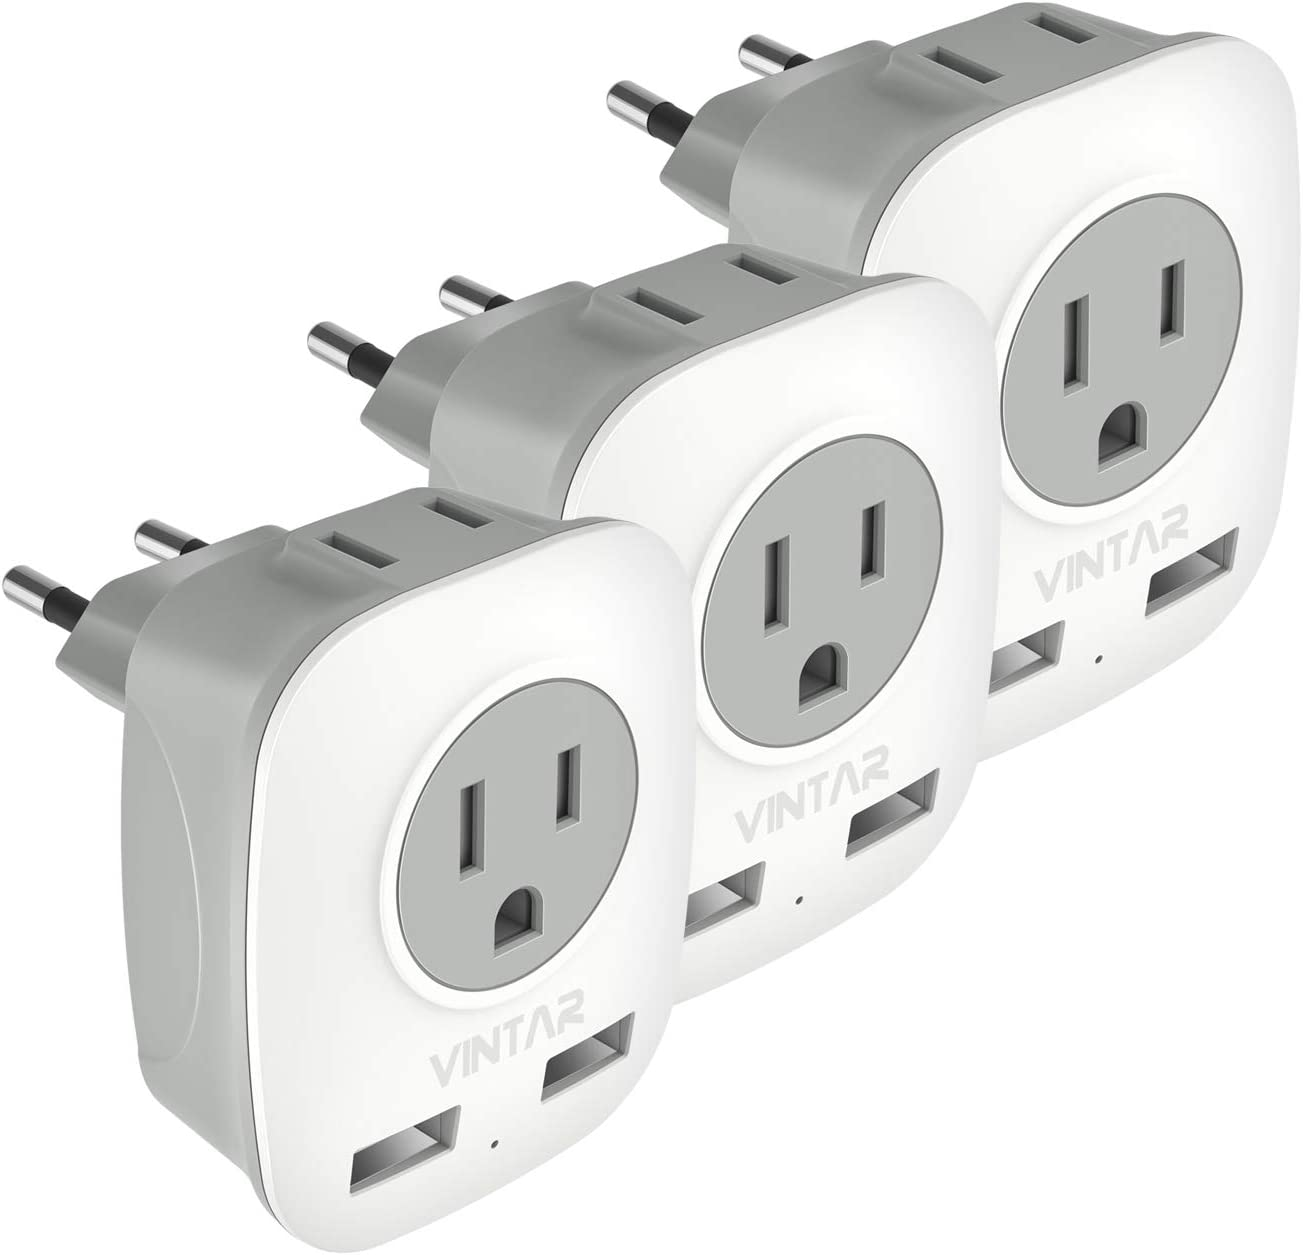 [3-Pack] European Plug Adapter, VINTAR International Power Adaptor with 2 USB Ports,2 American Outlets- 4 in 1 European Plug Adapter for France, German, Greece, Italy, Israel, Spain (Type C)